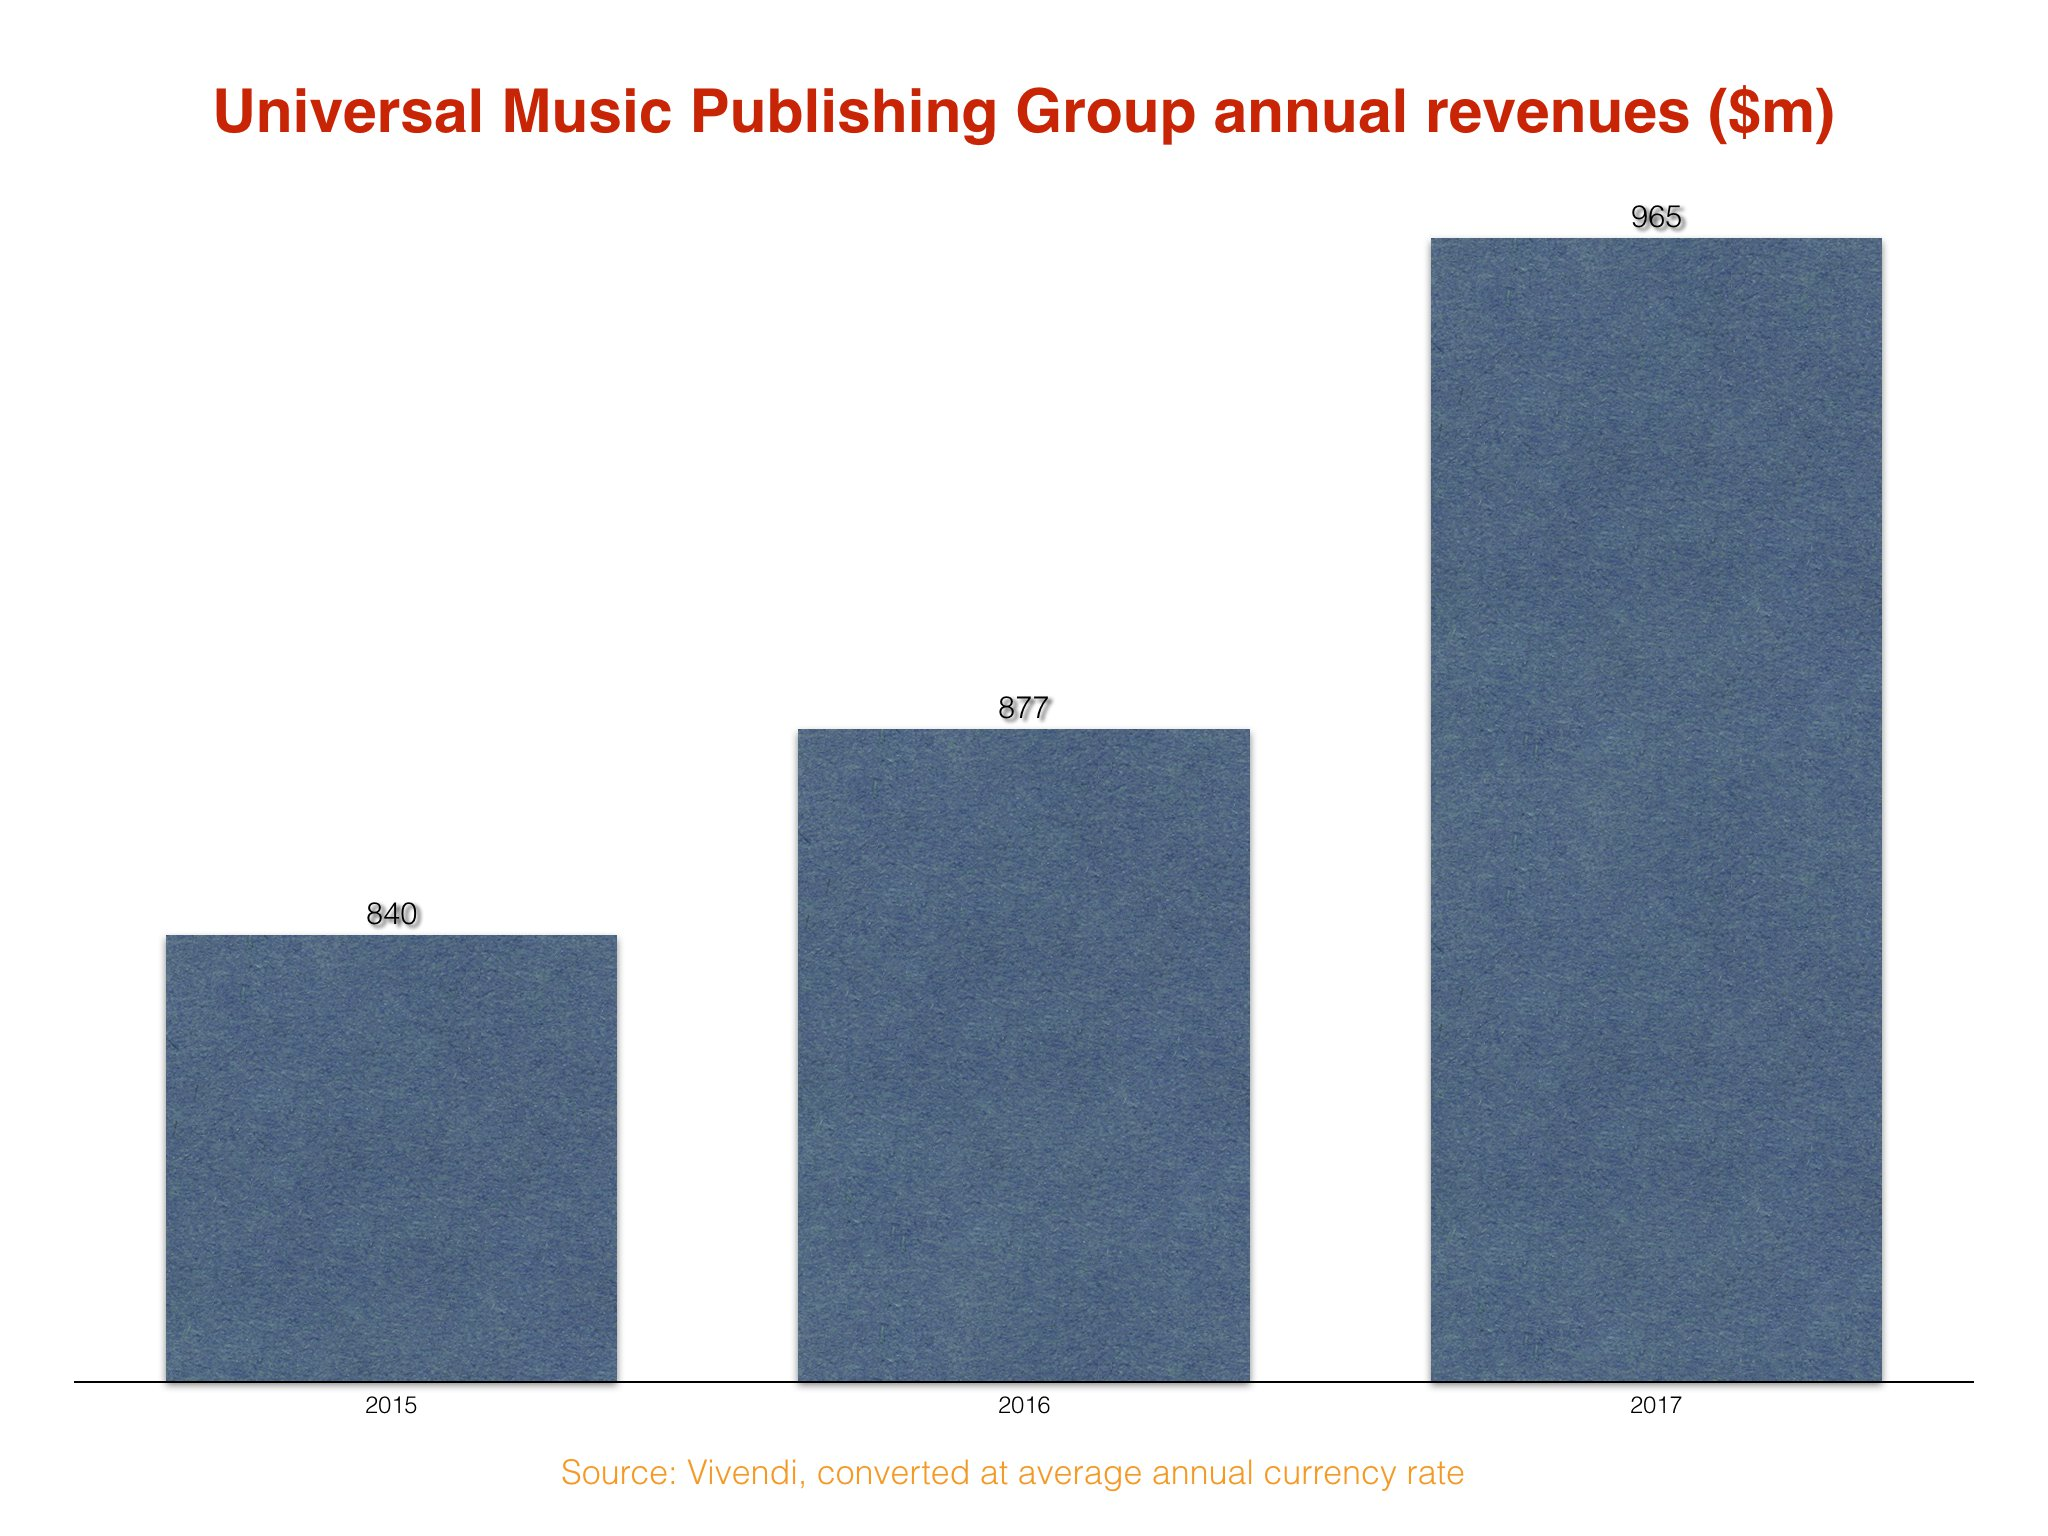 Universal Music Publishing Group's annual revenues have grown by